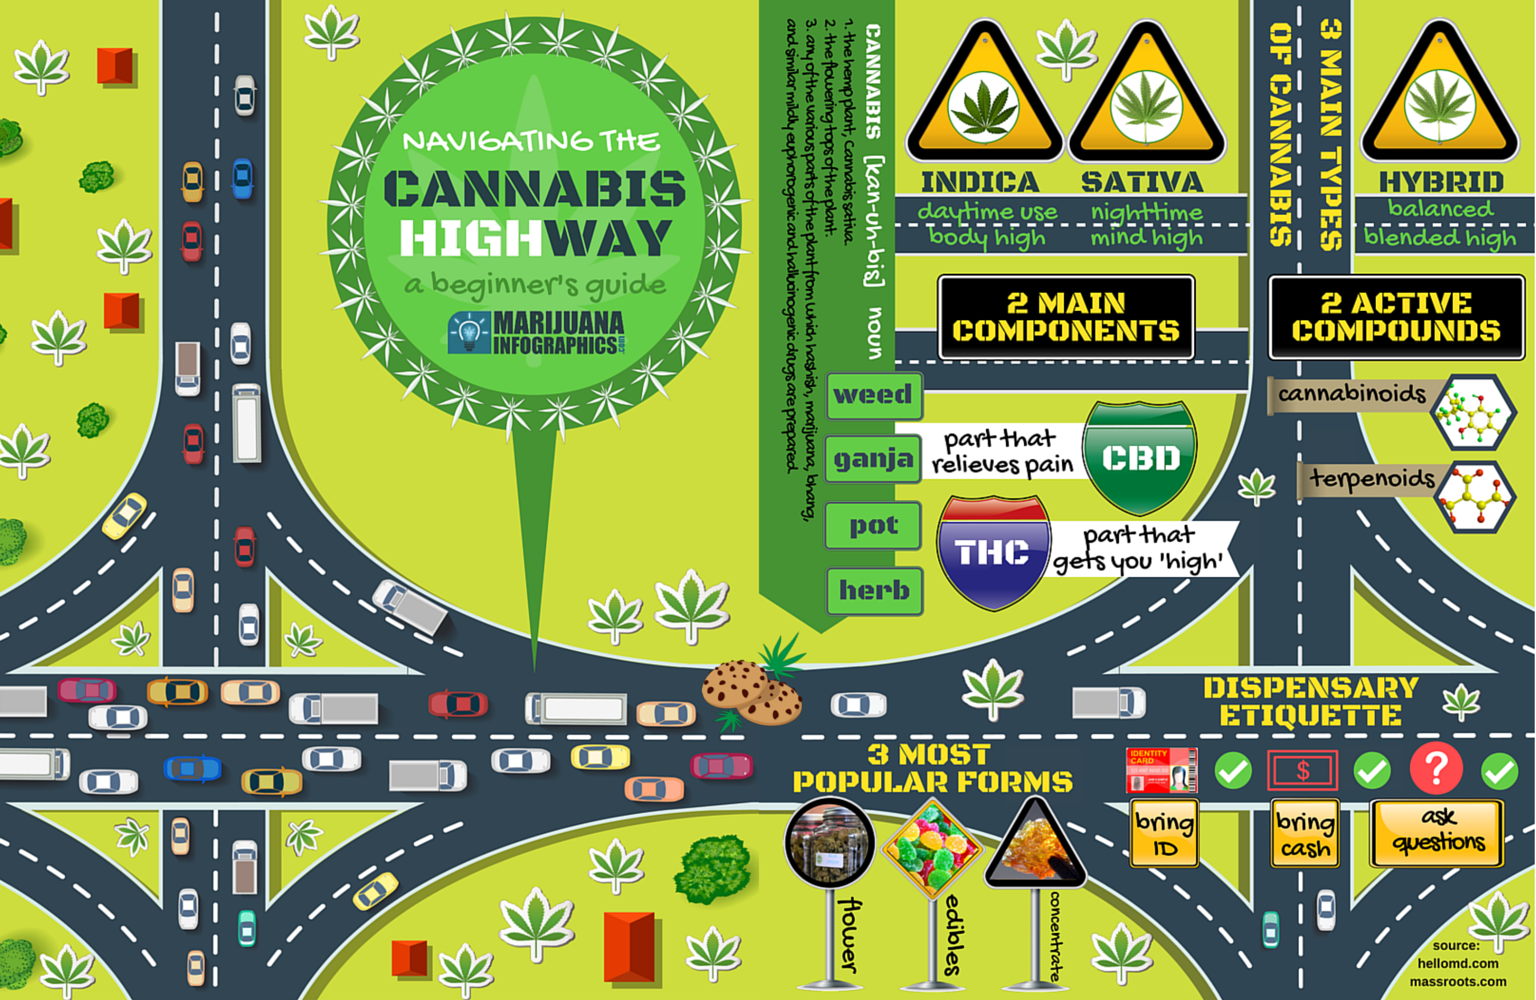 cannabis highway.png